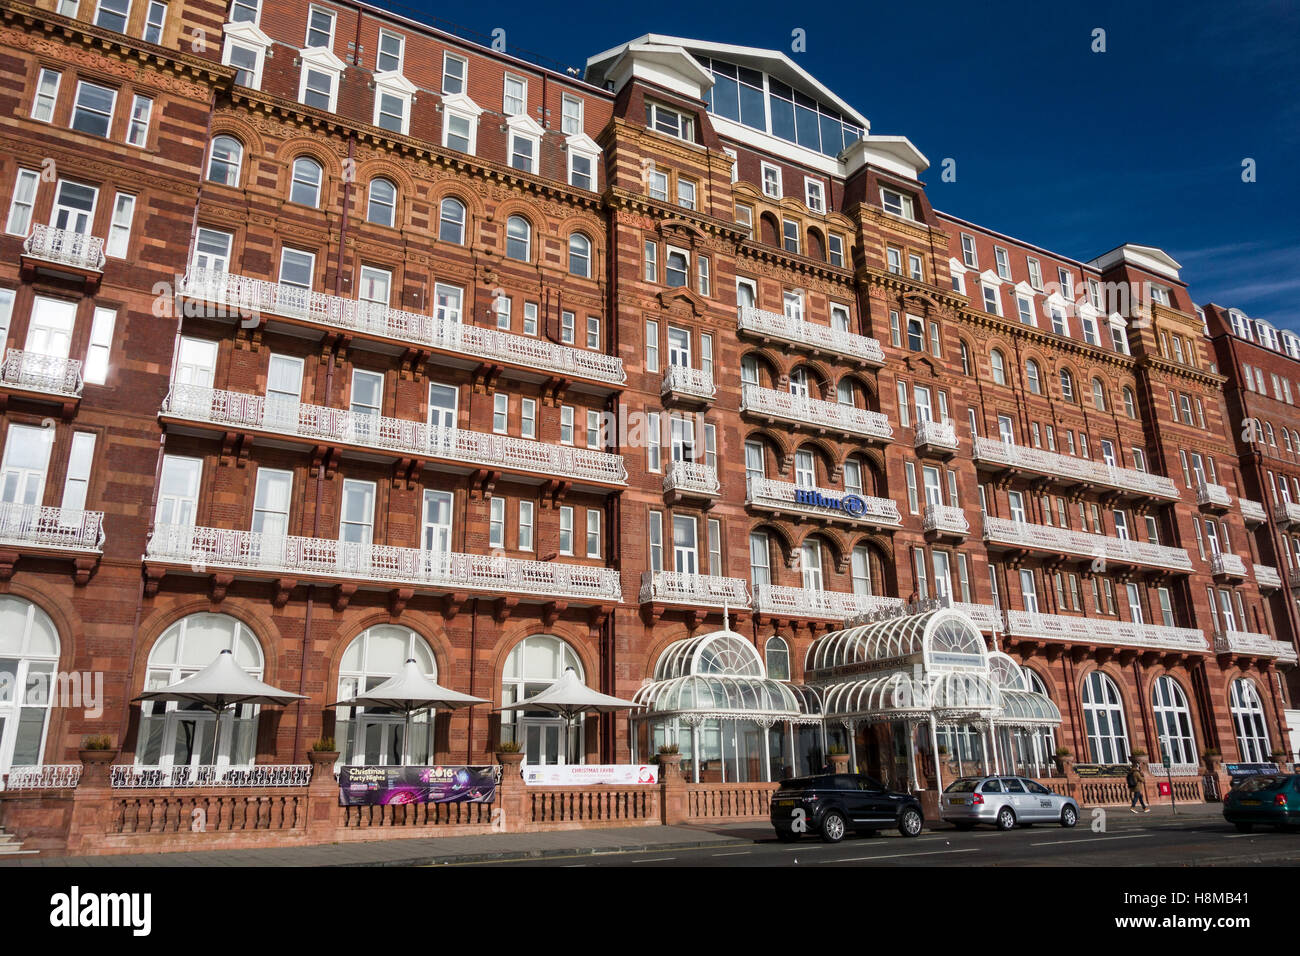 Hilton Brighton Metropole Hotel (built 1890), Brighton, Sussex, England UK - Stock Image